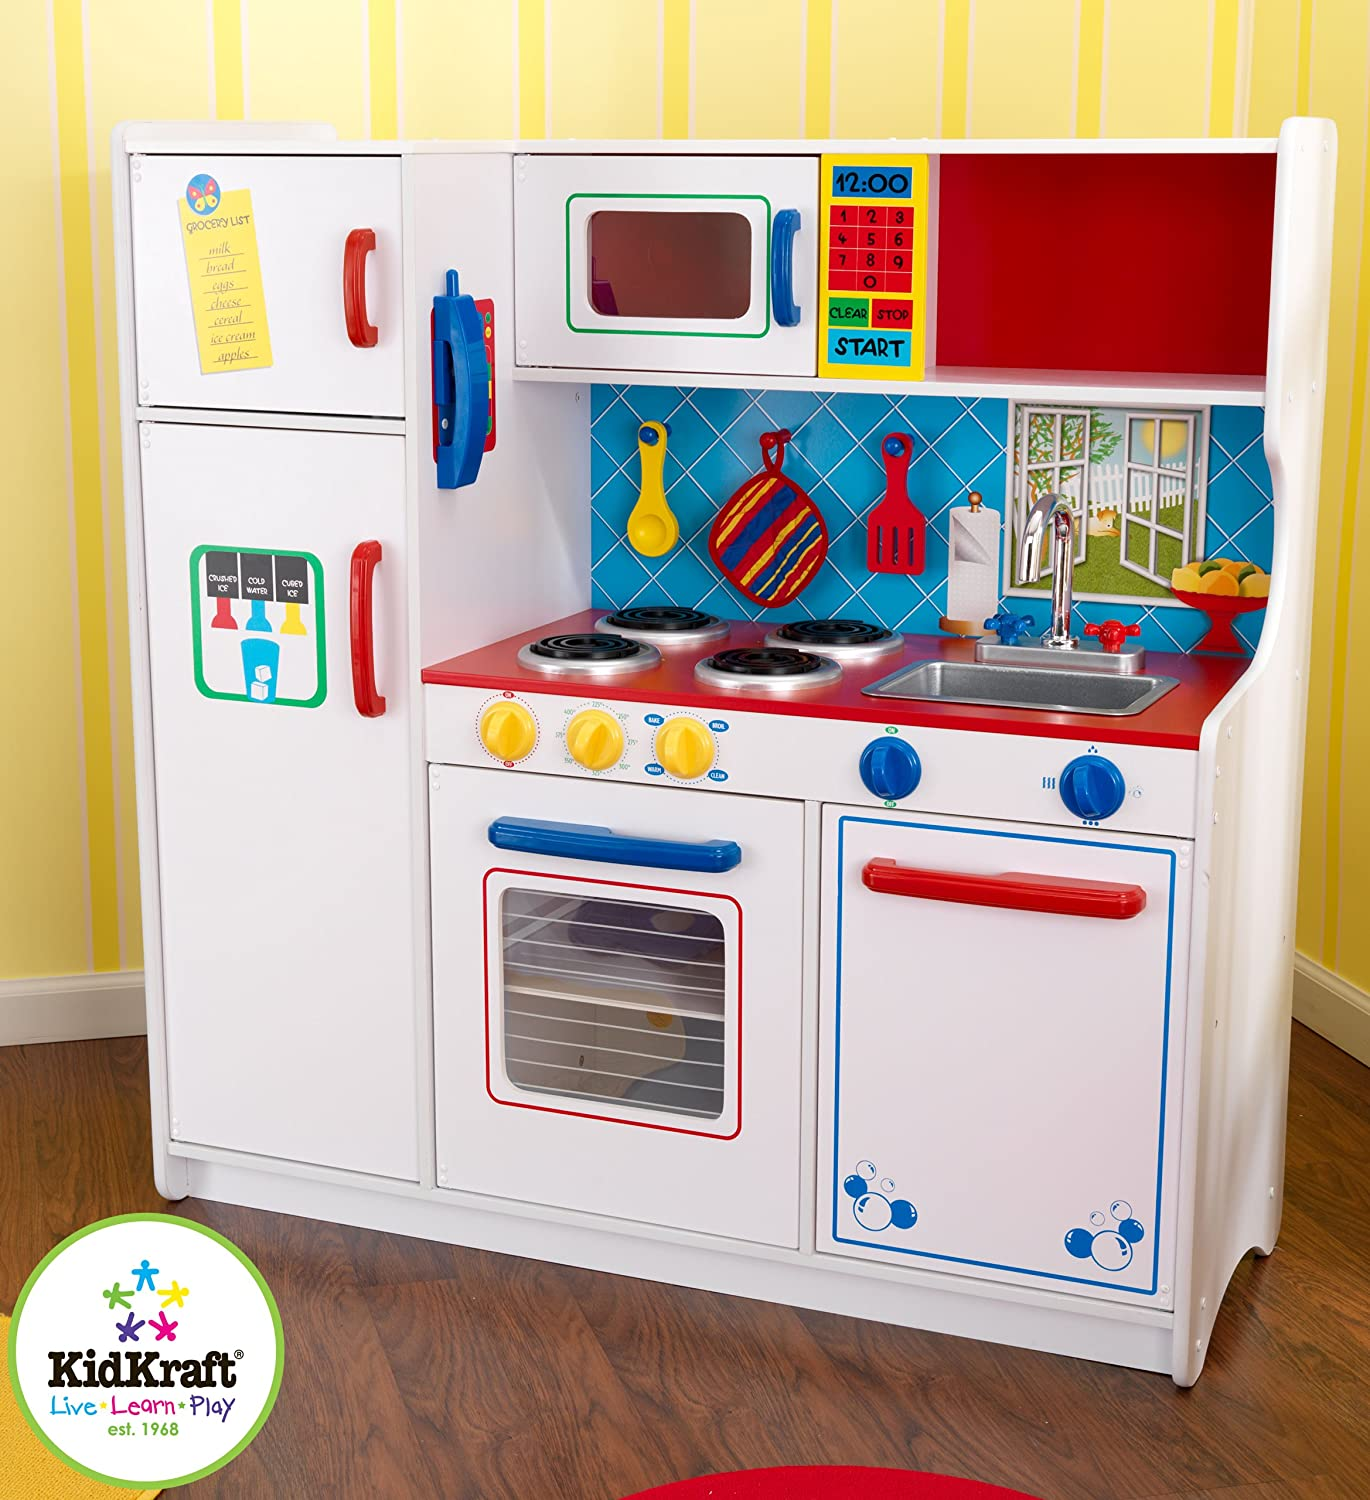 Amazon Kidkraft Deluxe Let s Cook Kitchen Toys & Games